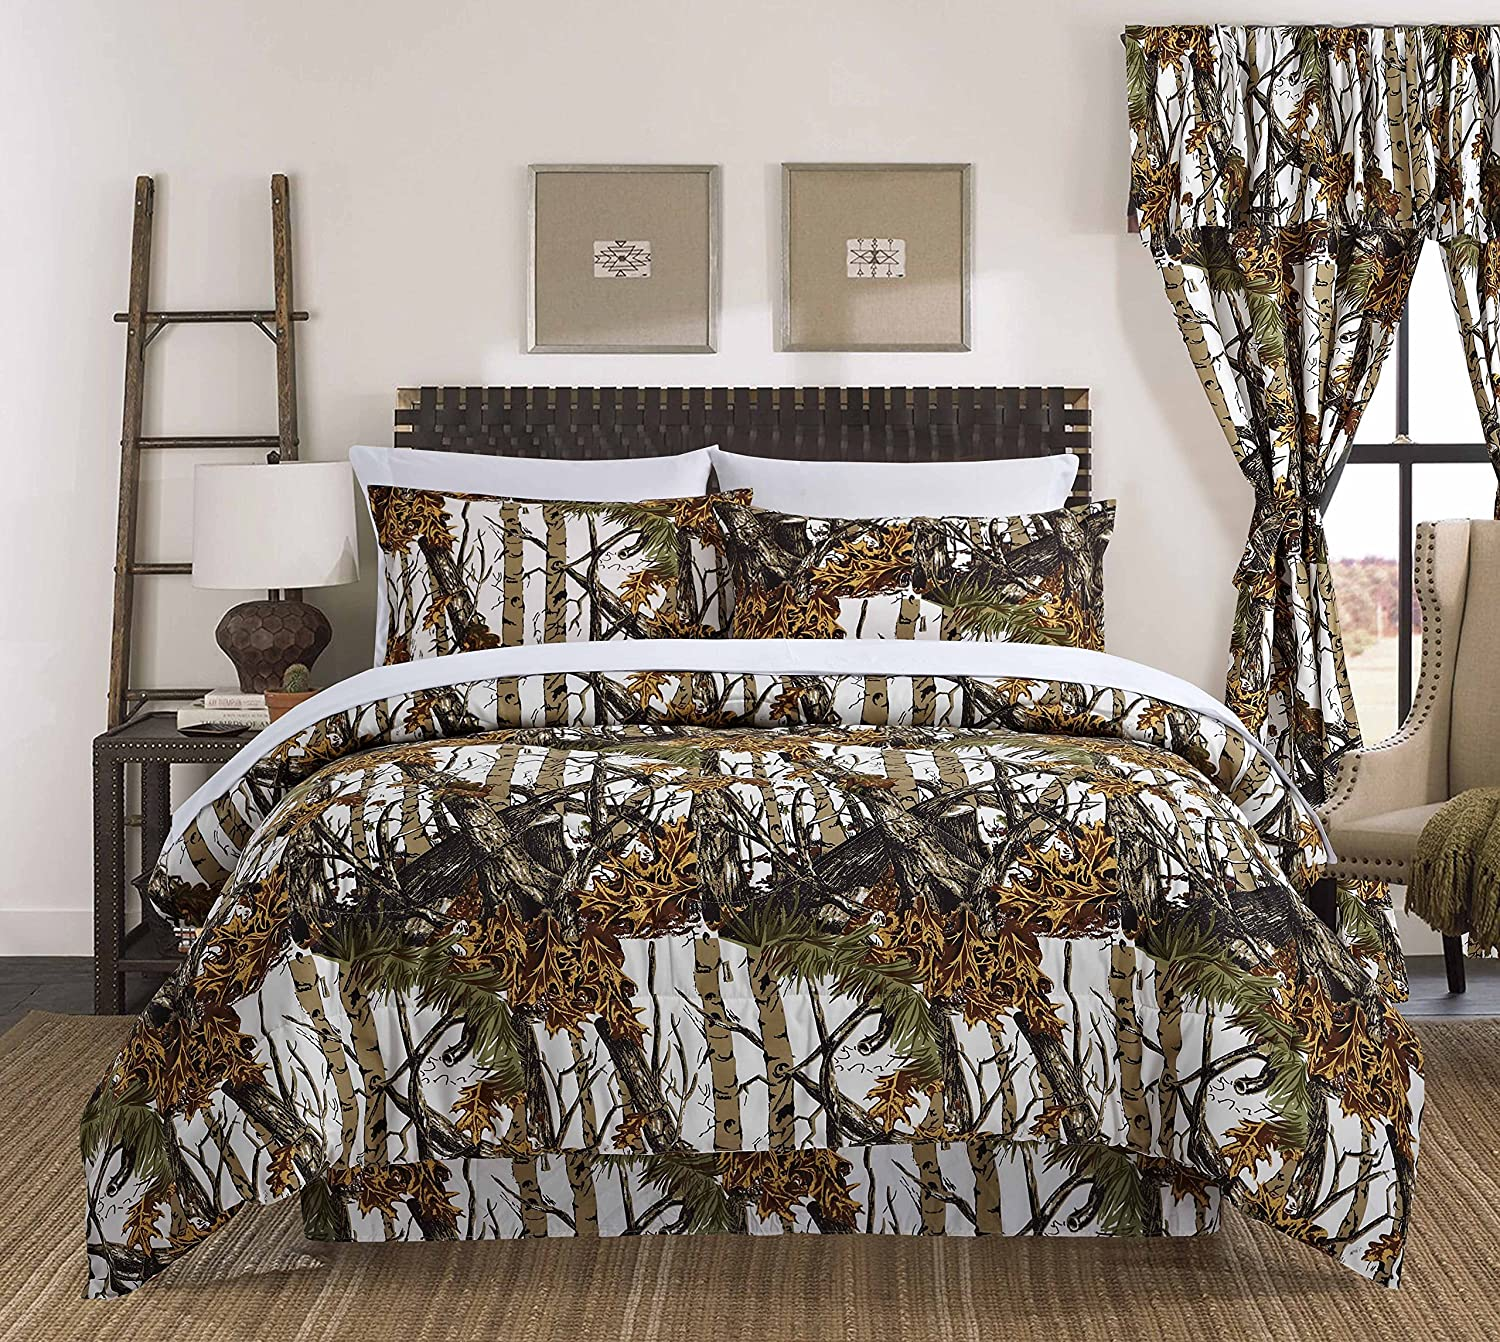 Regal Comfort The Woods White Camouflage Queen 4 Piece